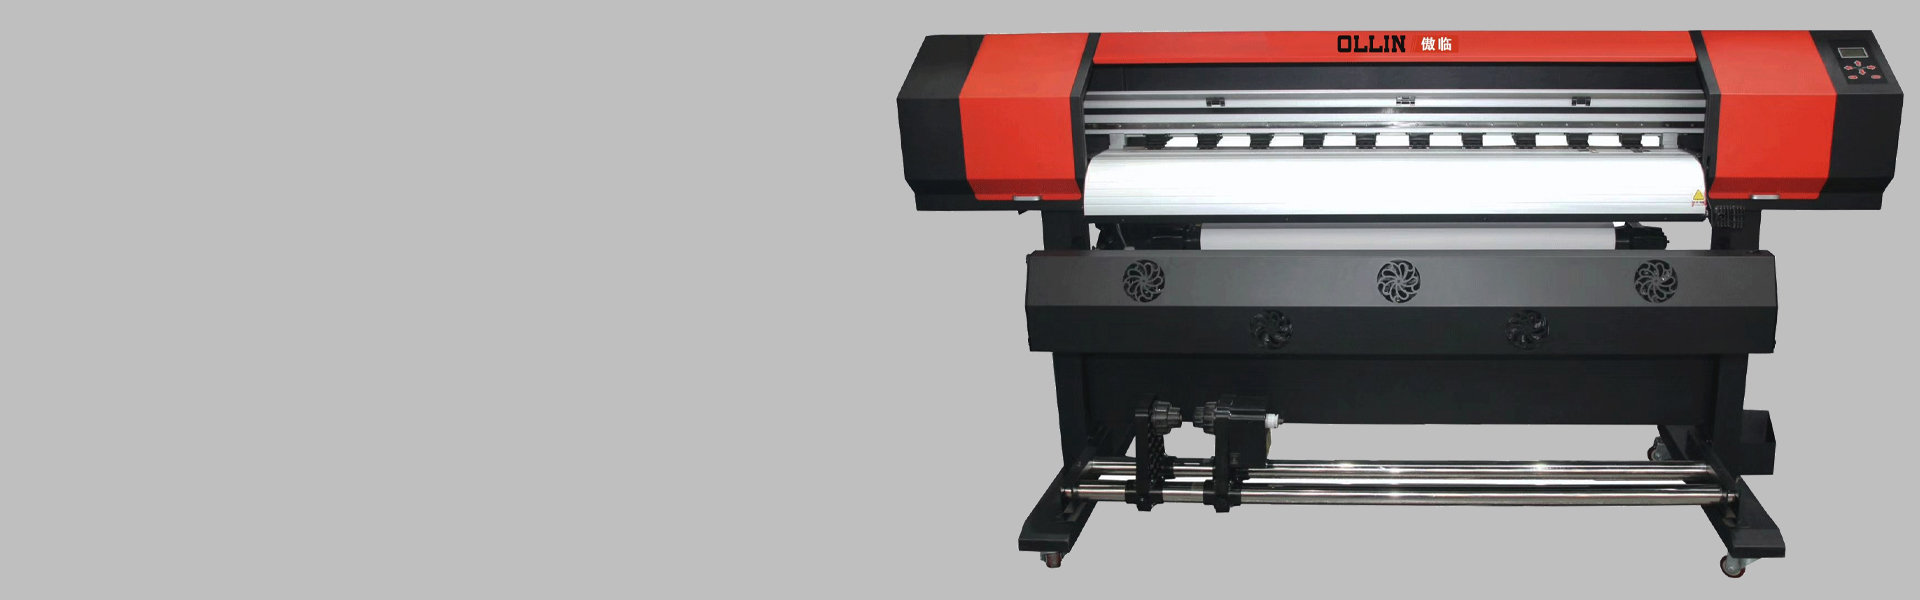 decal printer